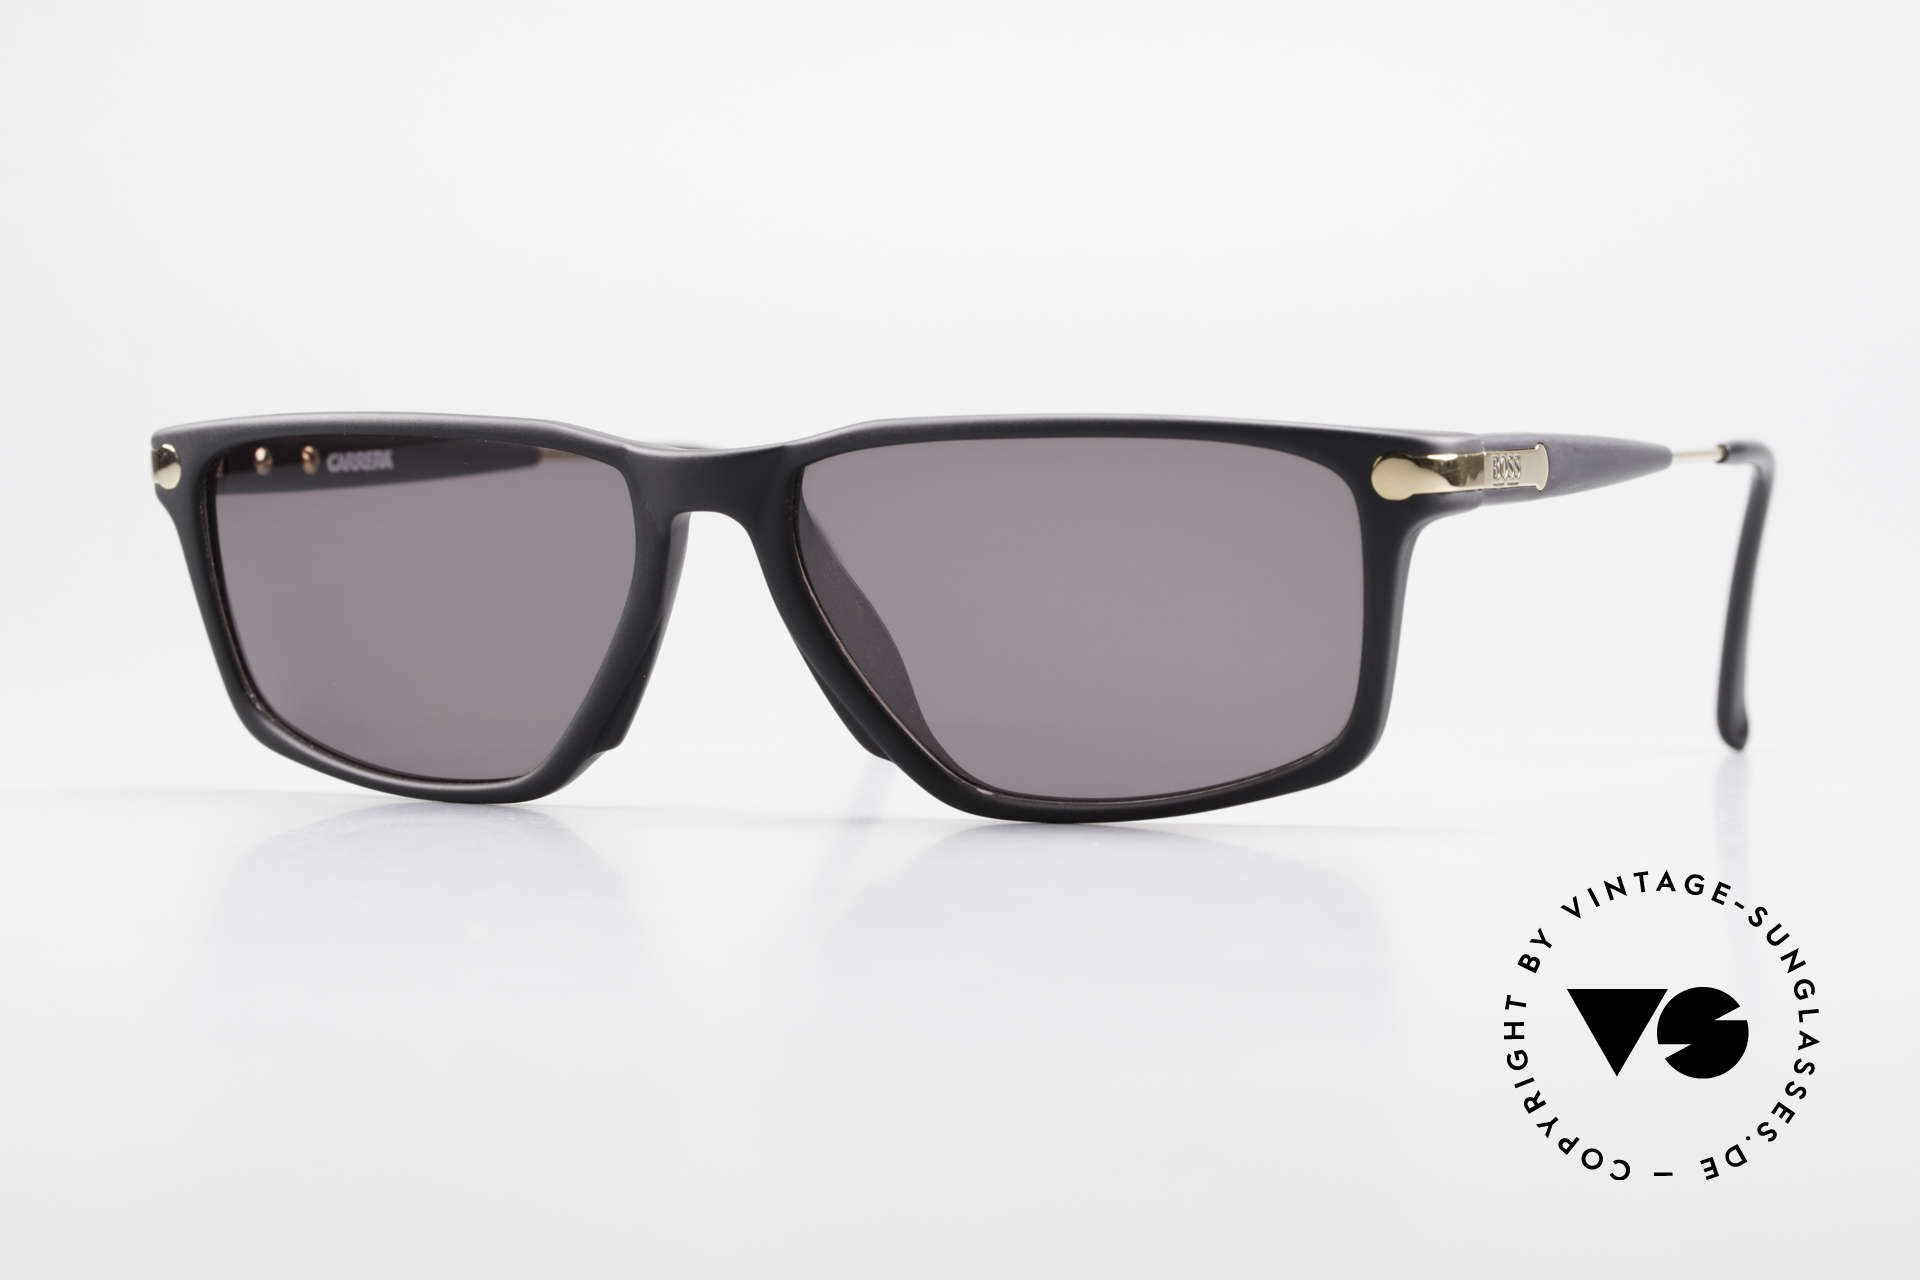 BOSS 5174 Square-Cut Vintage Sunglasses, striking BOSS vintage designer shades of the 90's, Made for Men